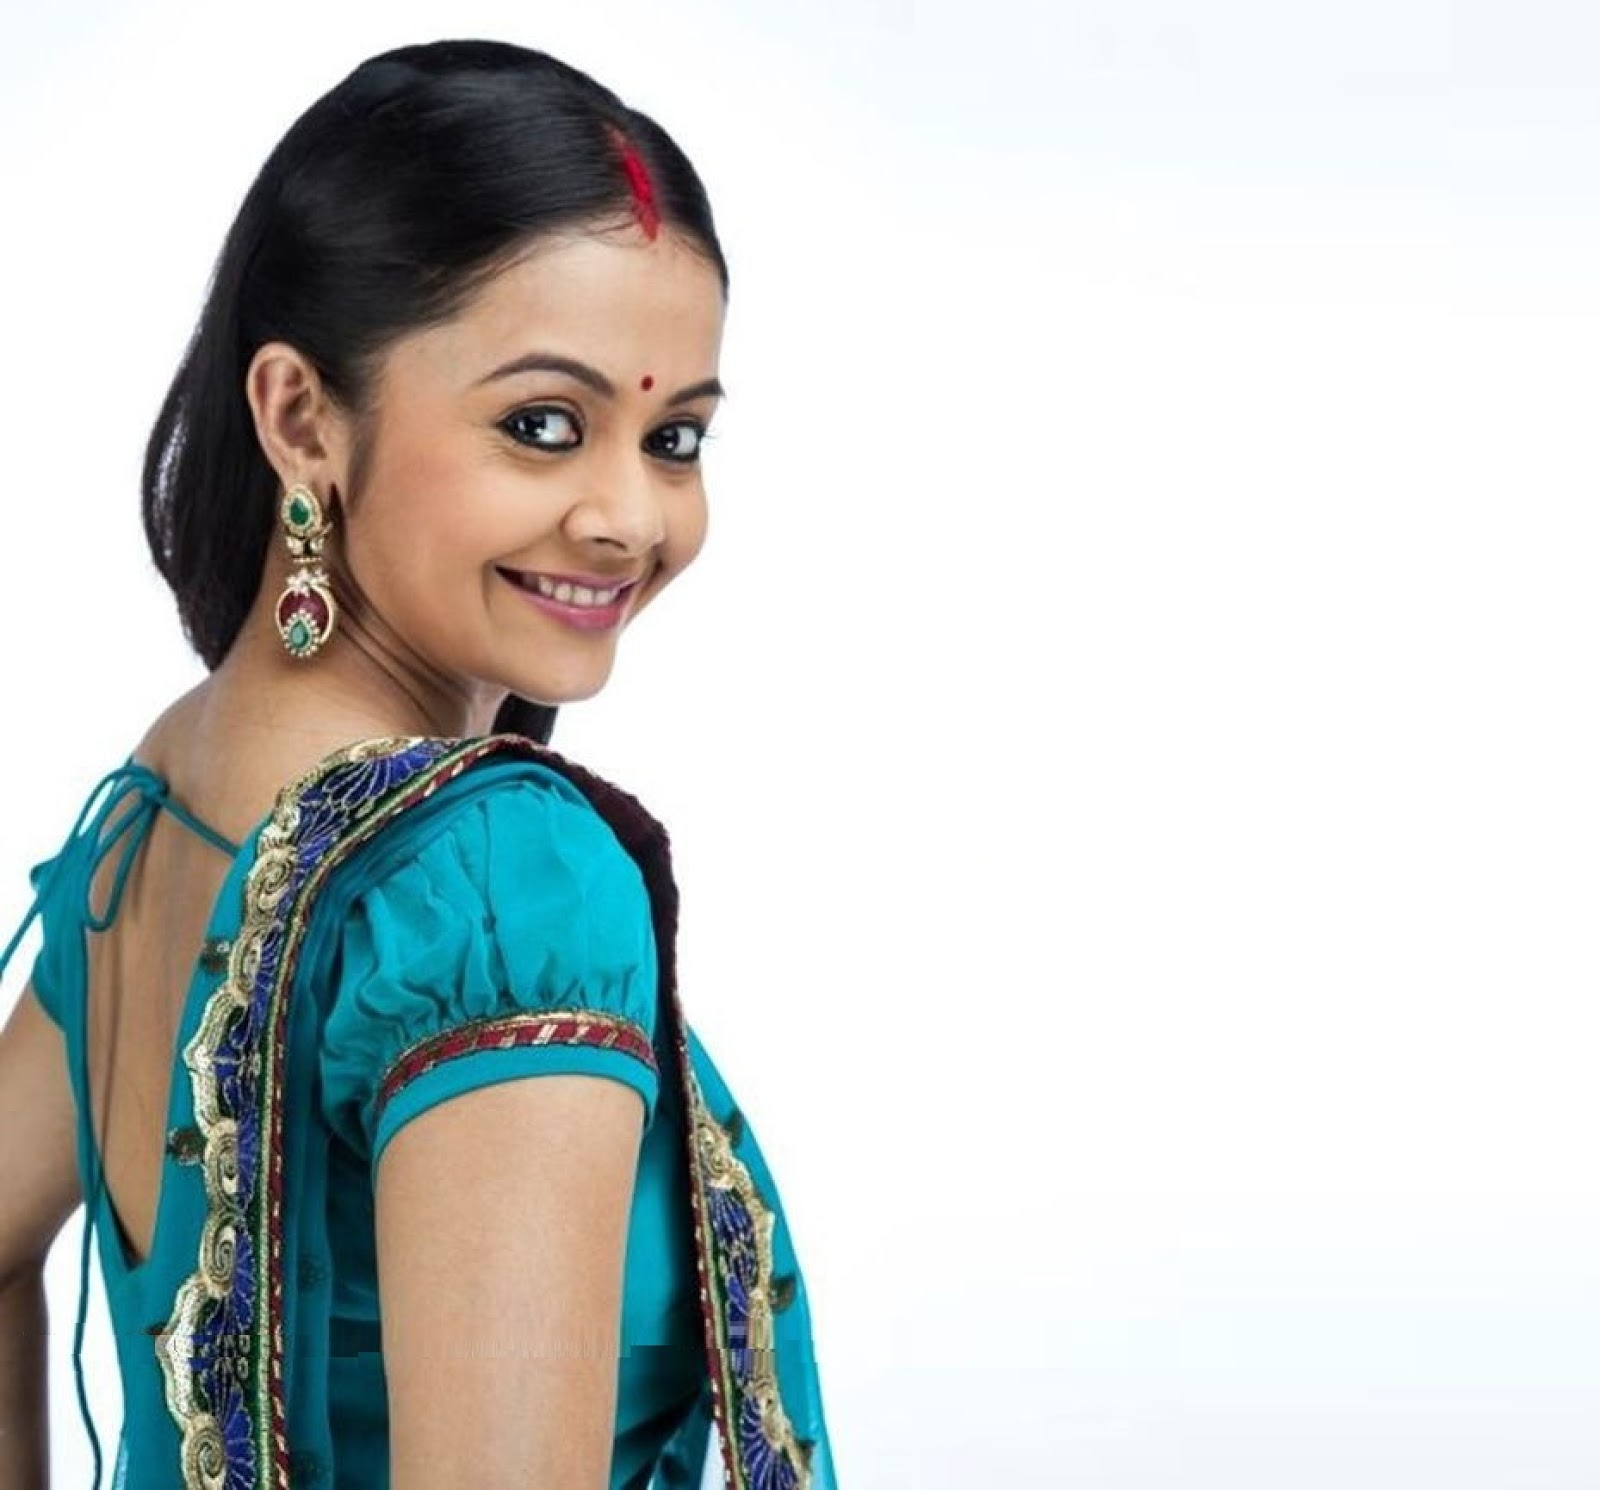 Free Download HD Wallpapers: Devoleena Bhattacharjee